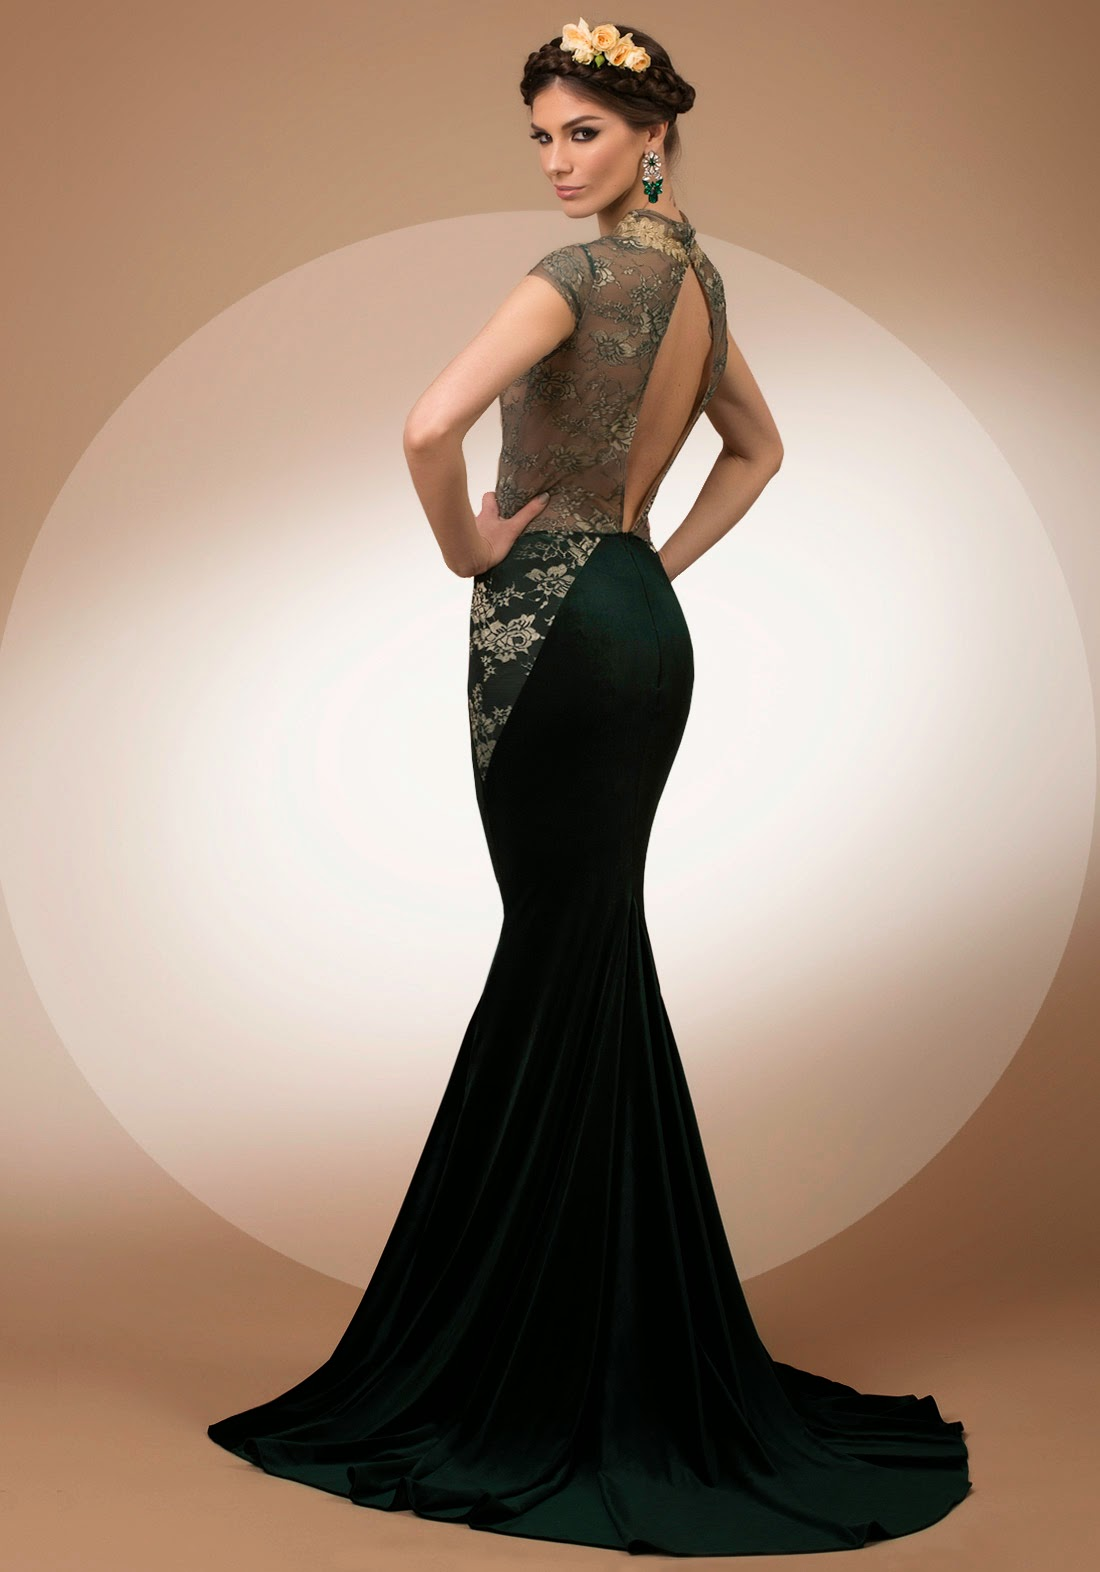 My Secret Forest, mermaid velvet and lace evening dress with deep V neck, Bien Savvy My Secret collection